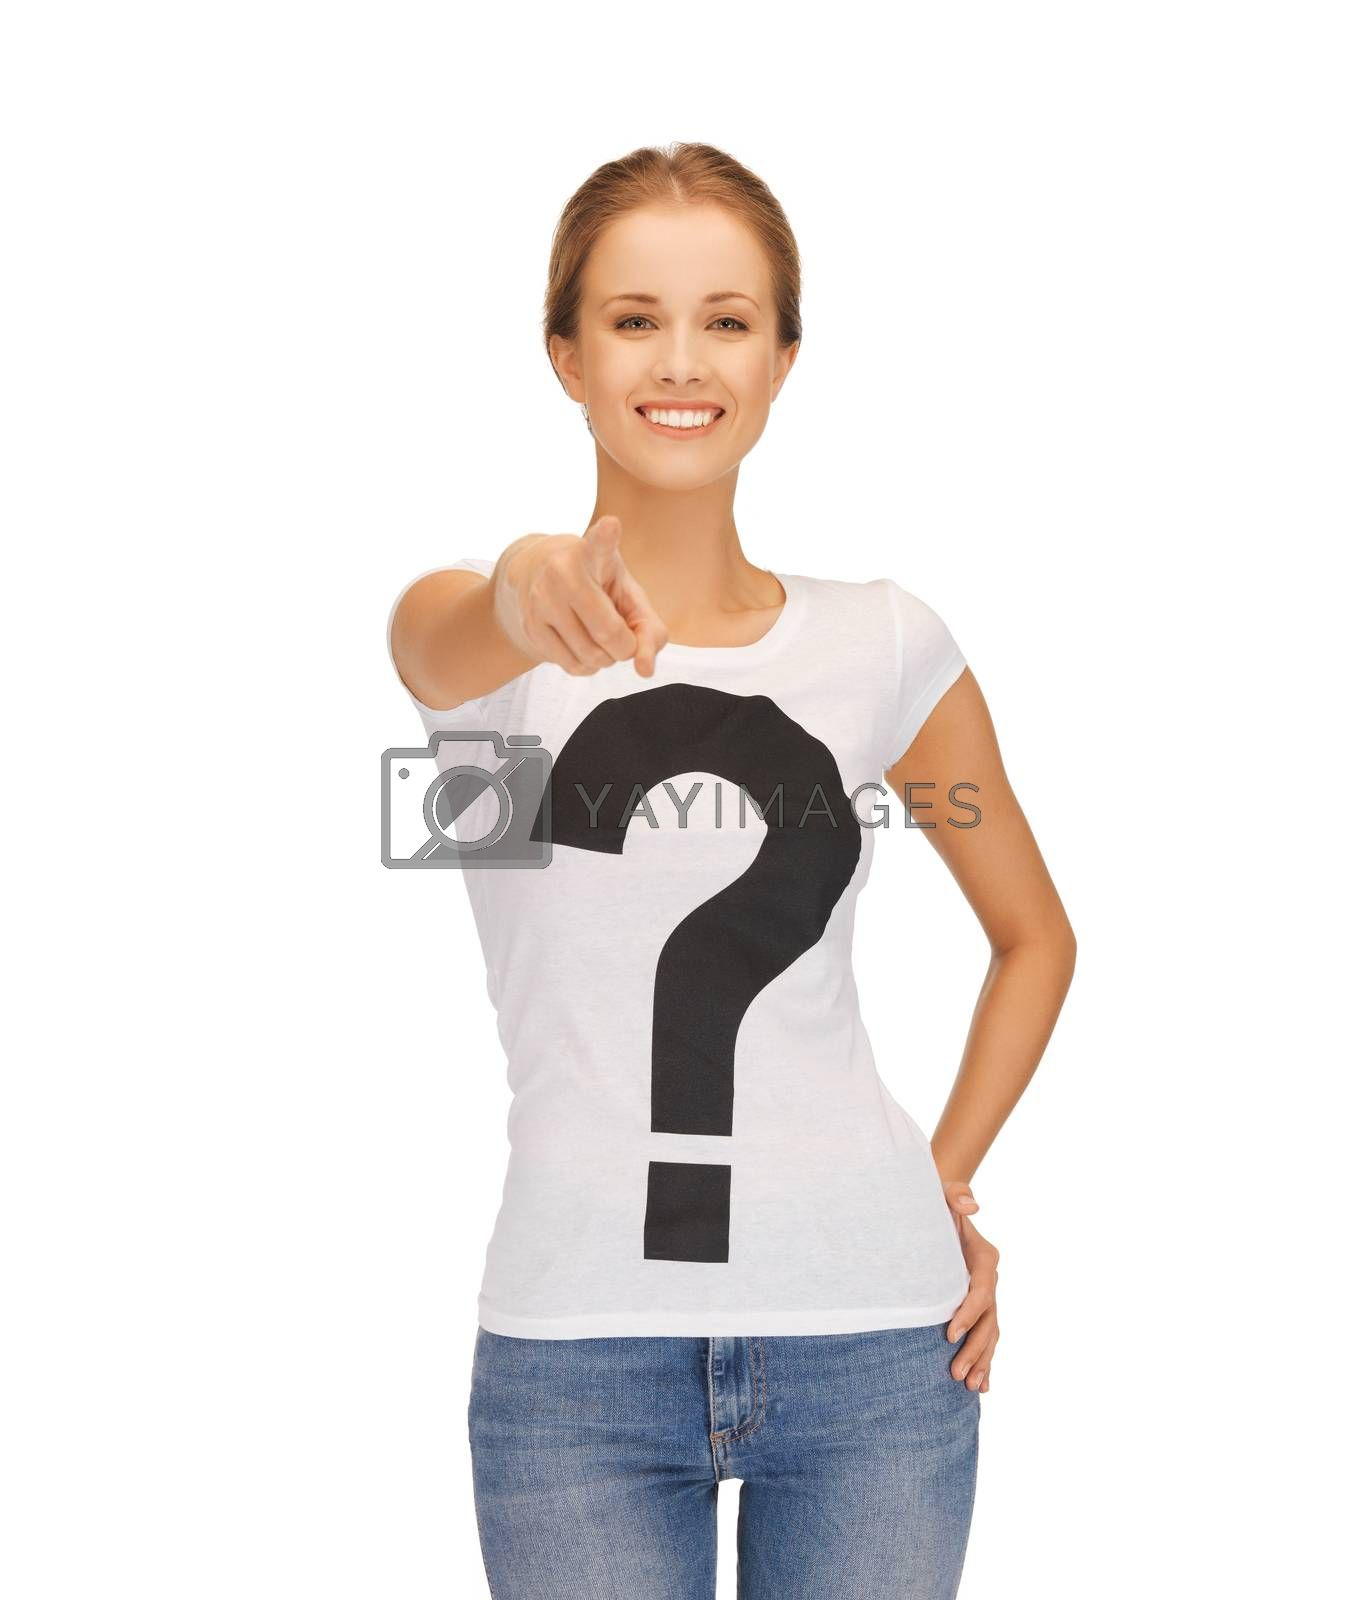 woman in white t-shirt pointing at you by dolgachov